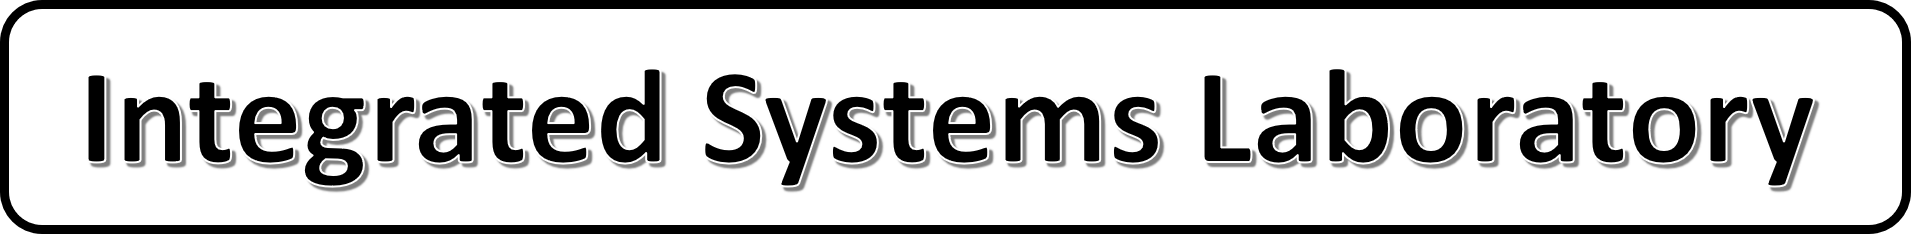 Integrated Systems Laboratory